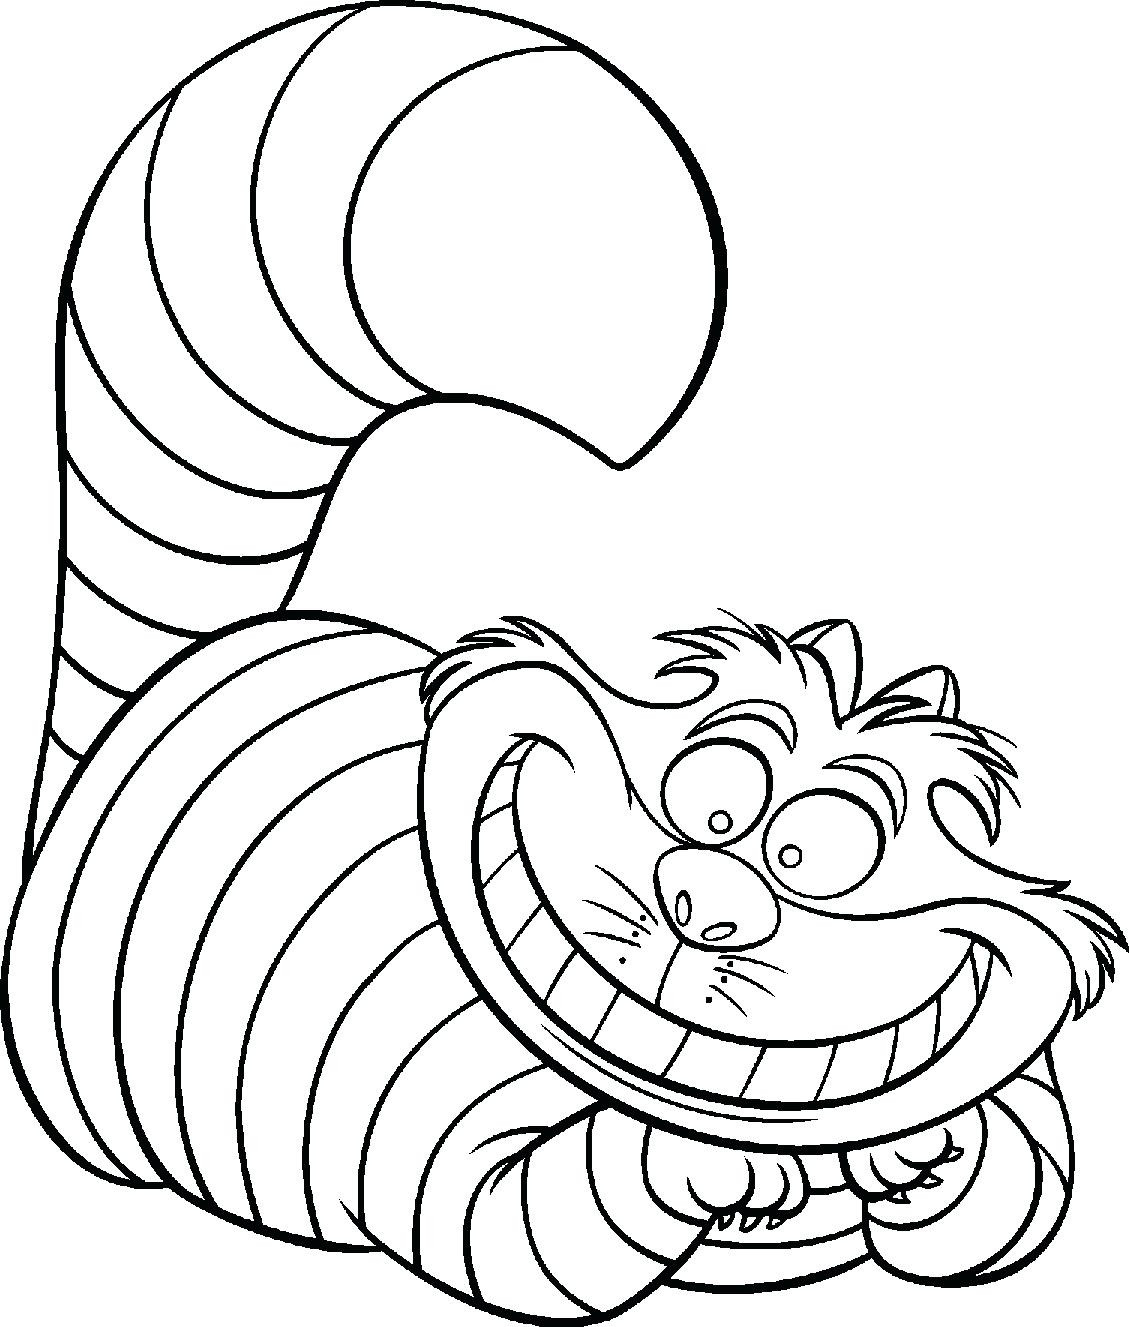 splatoon coloring pages Download-Cat Coloring Pages Printable Splatoon Coloring Pages New Colering sol R Coloring Pages Best 0d 20-a